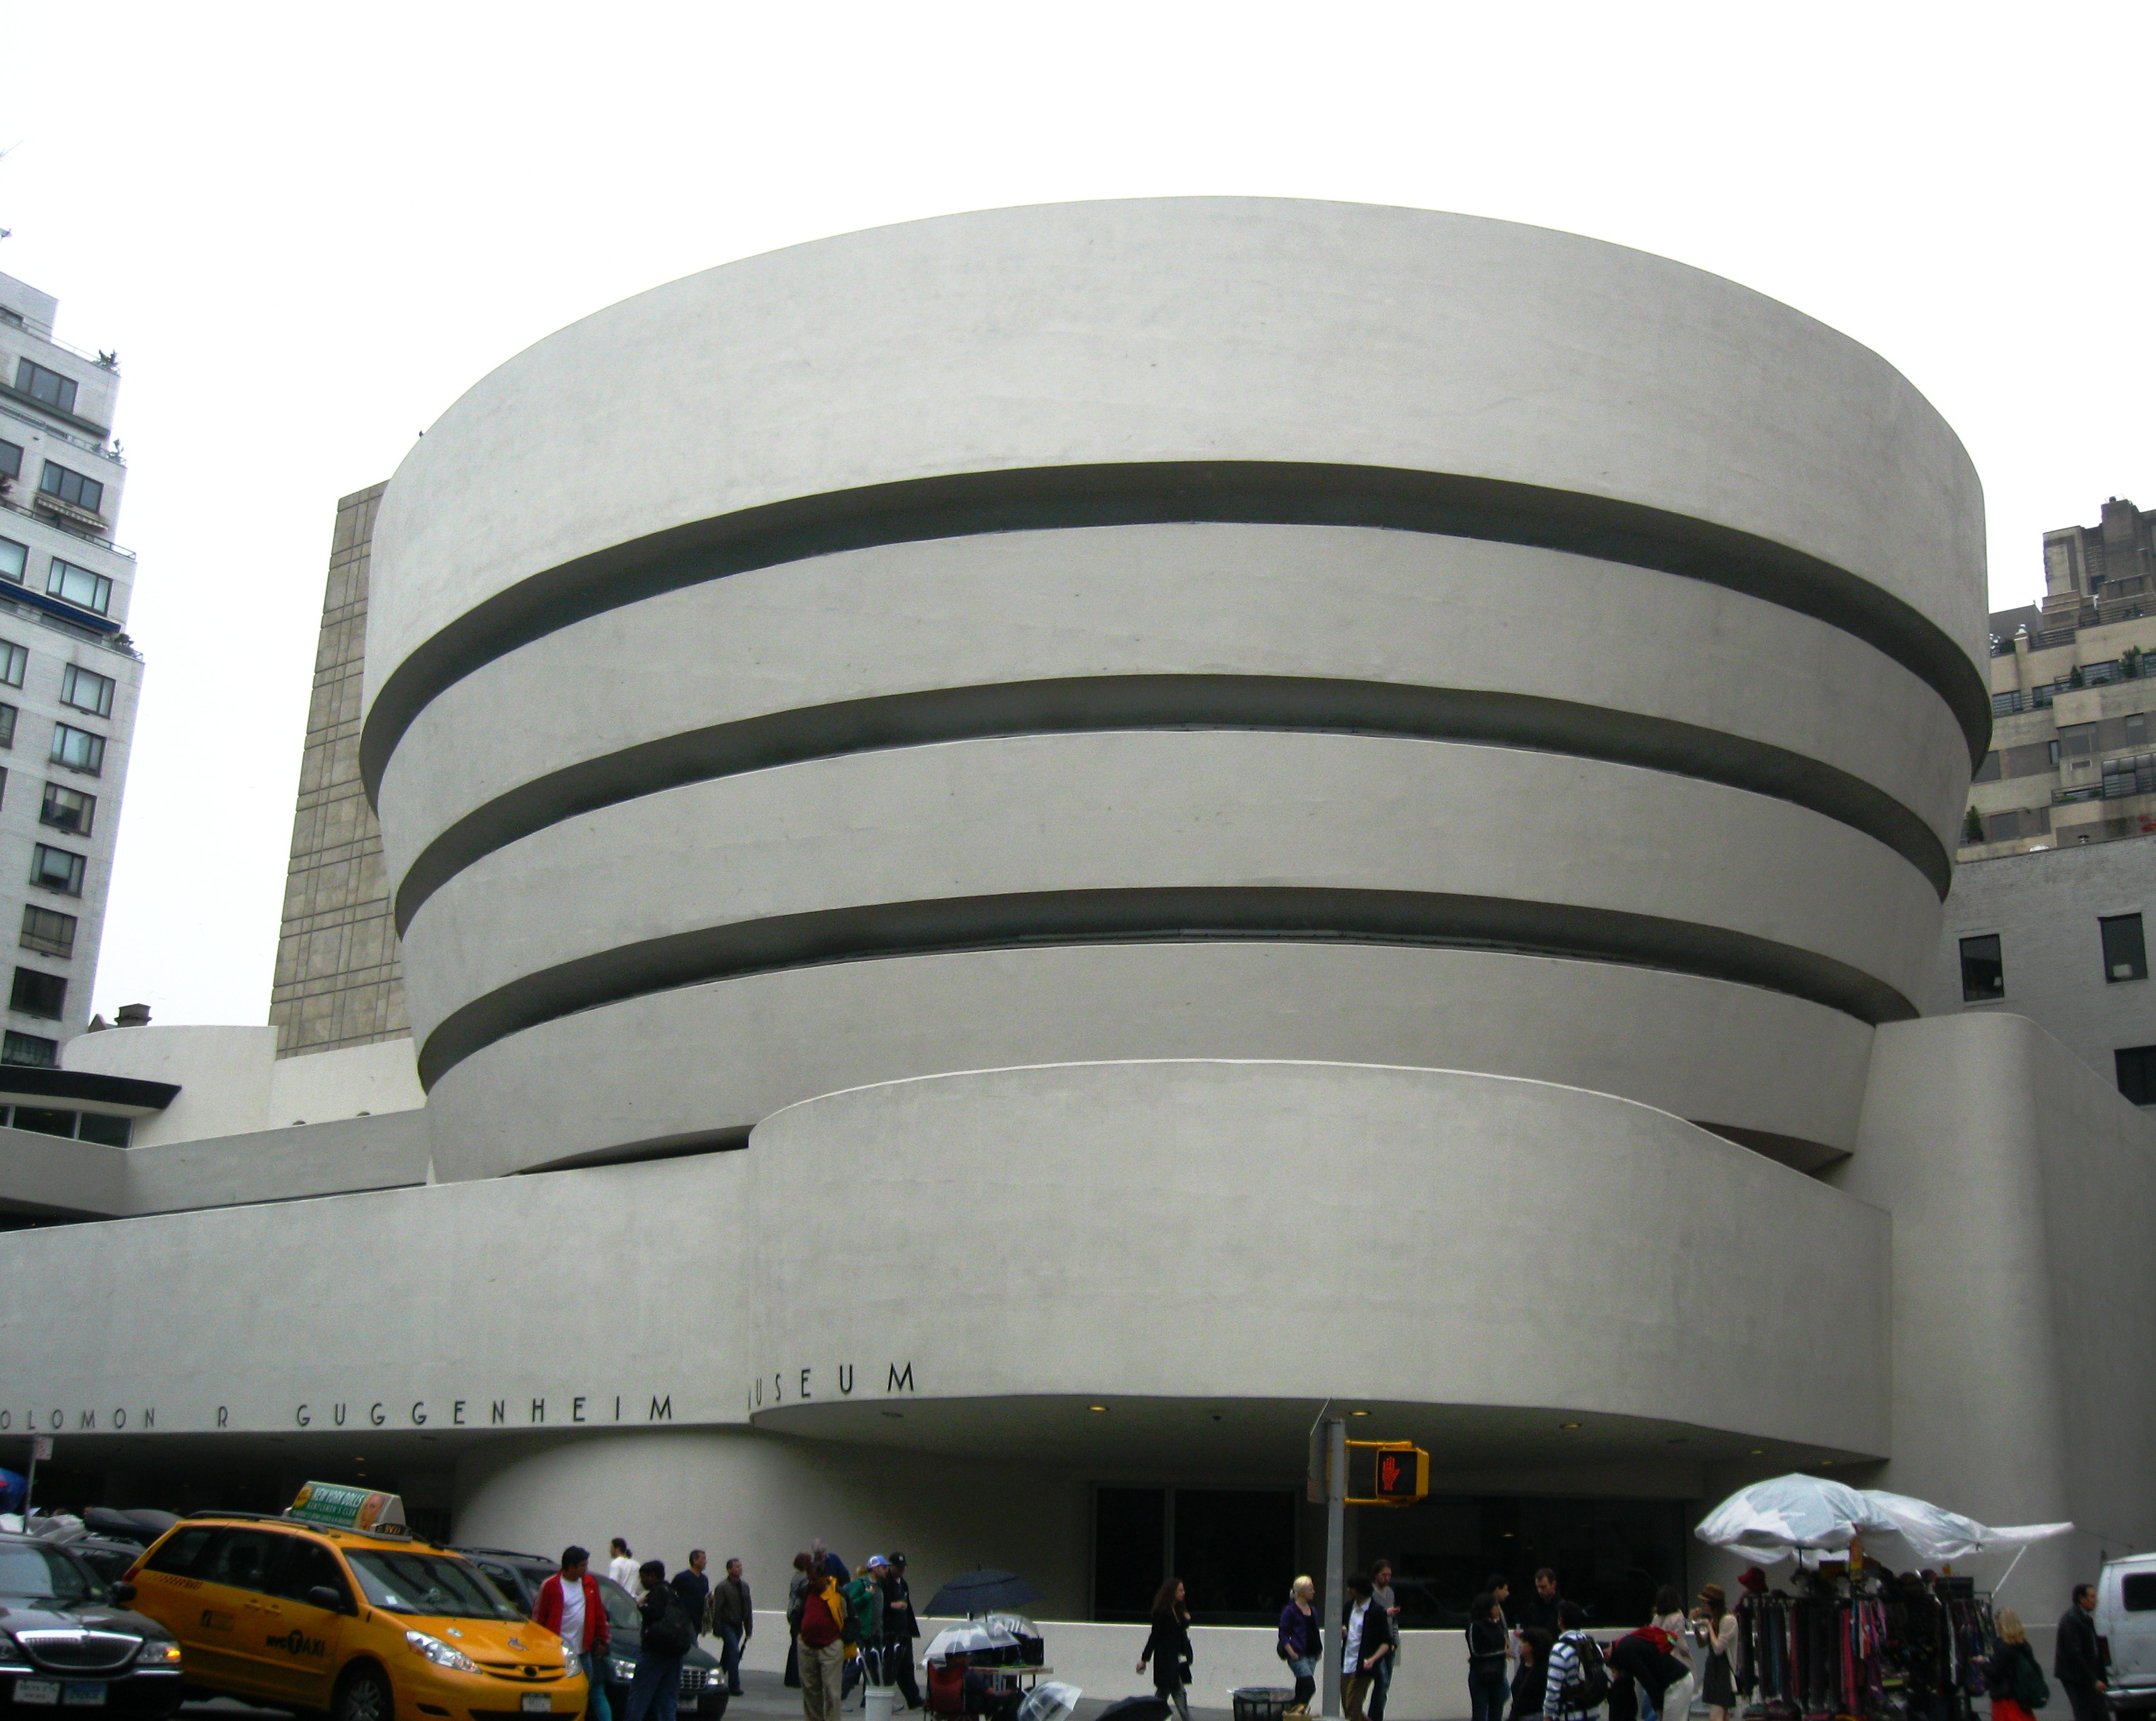 comparison of the met and guggenheim essay Essays research papers - comparison of the met and guggenheim.